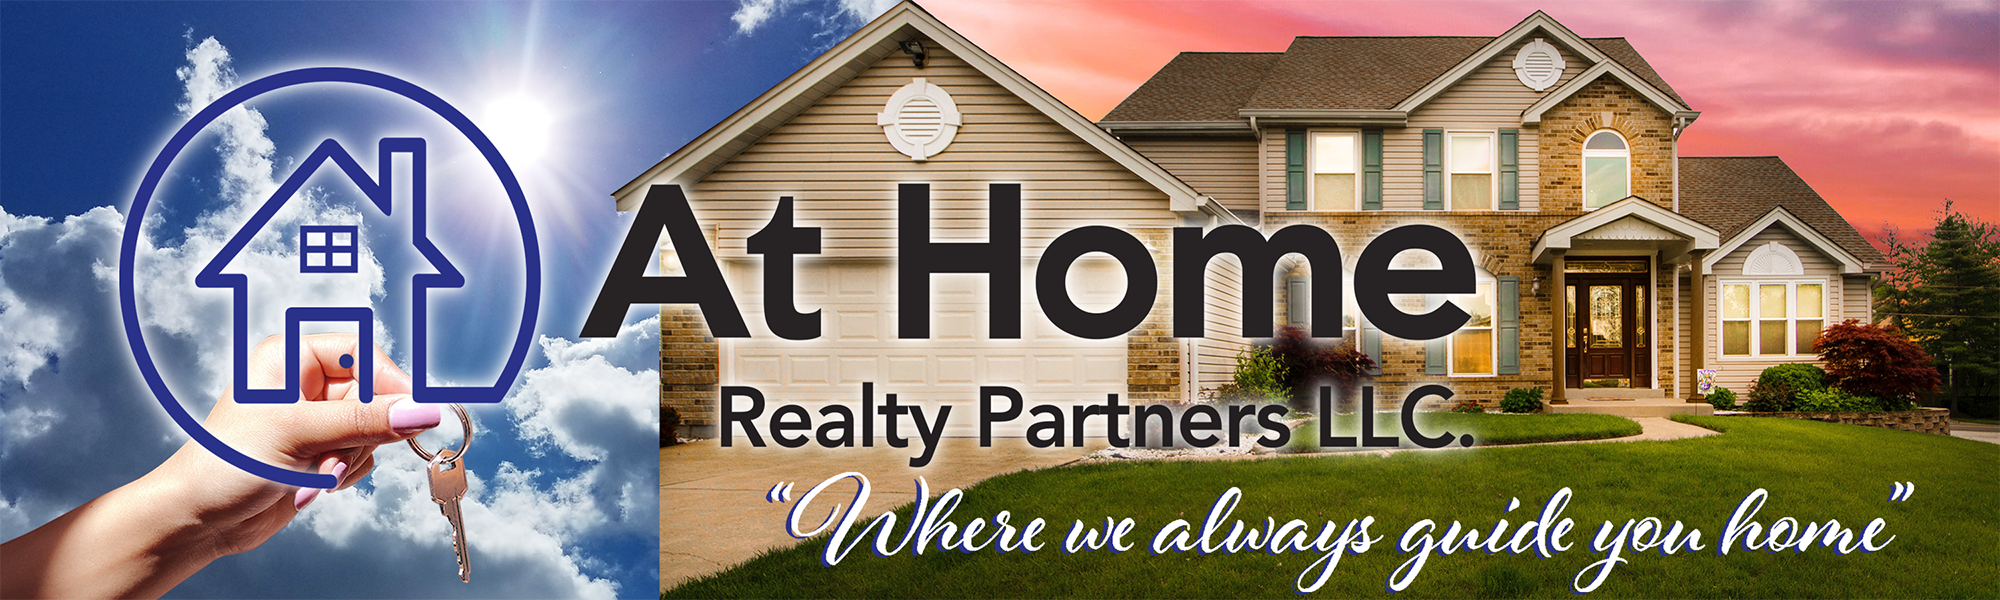 At Home Realty Partners LLC